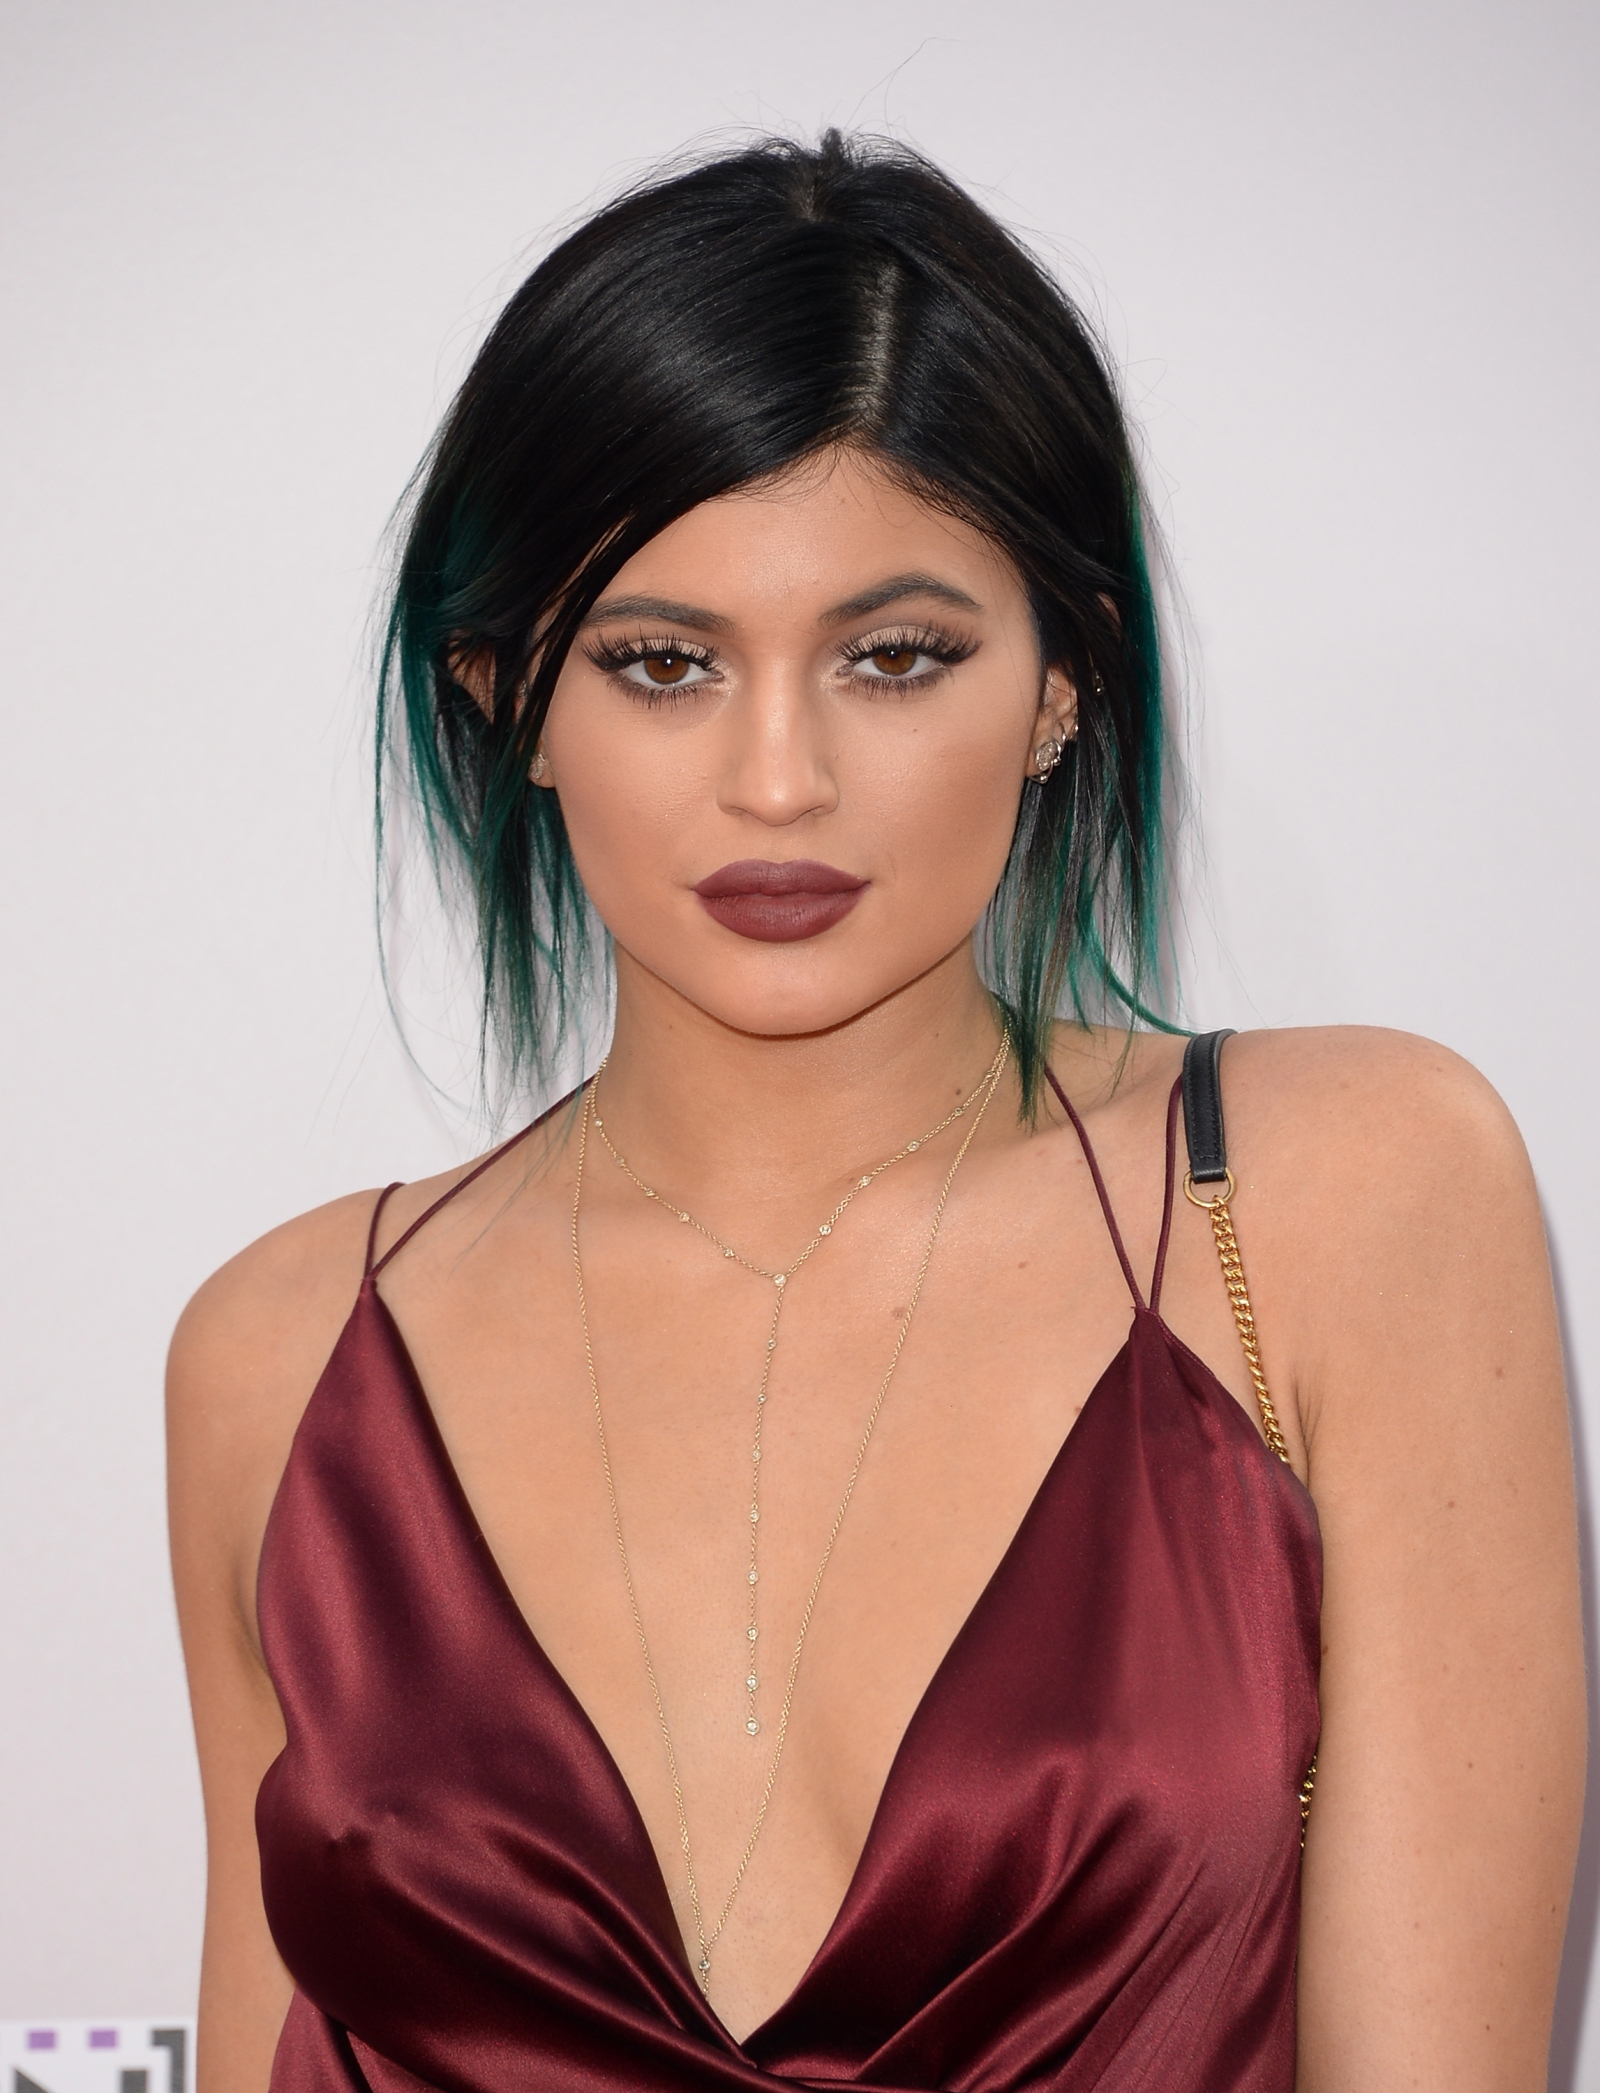 Kylie Jenner Depressed: Kylie Jenner Bitterly Jealous Of Kendall Jenner's Career